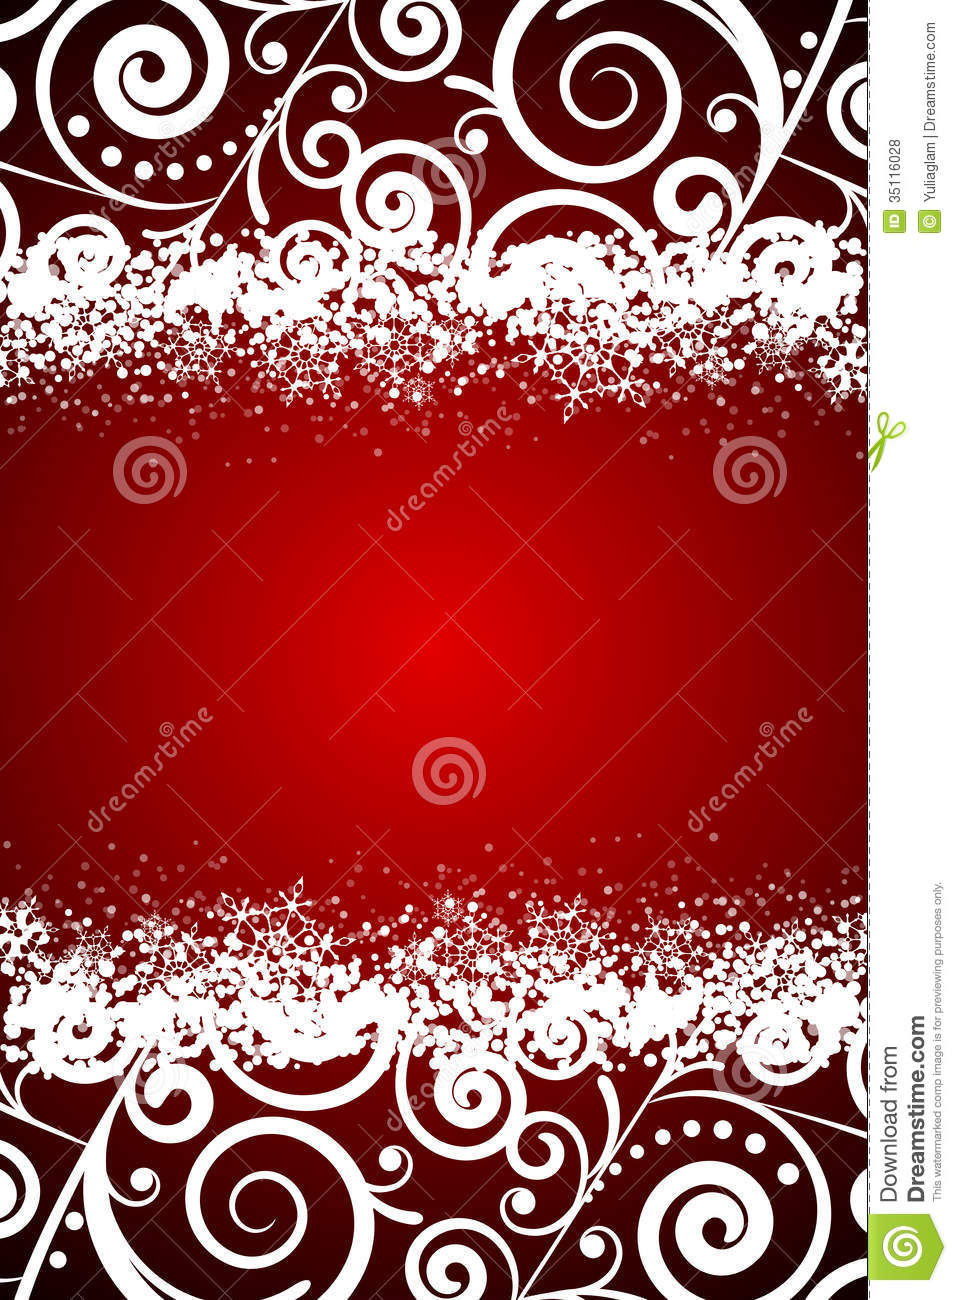 Floral Decorations red background with white floral decorations and s royalty free